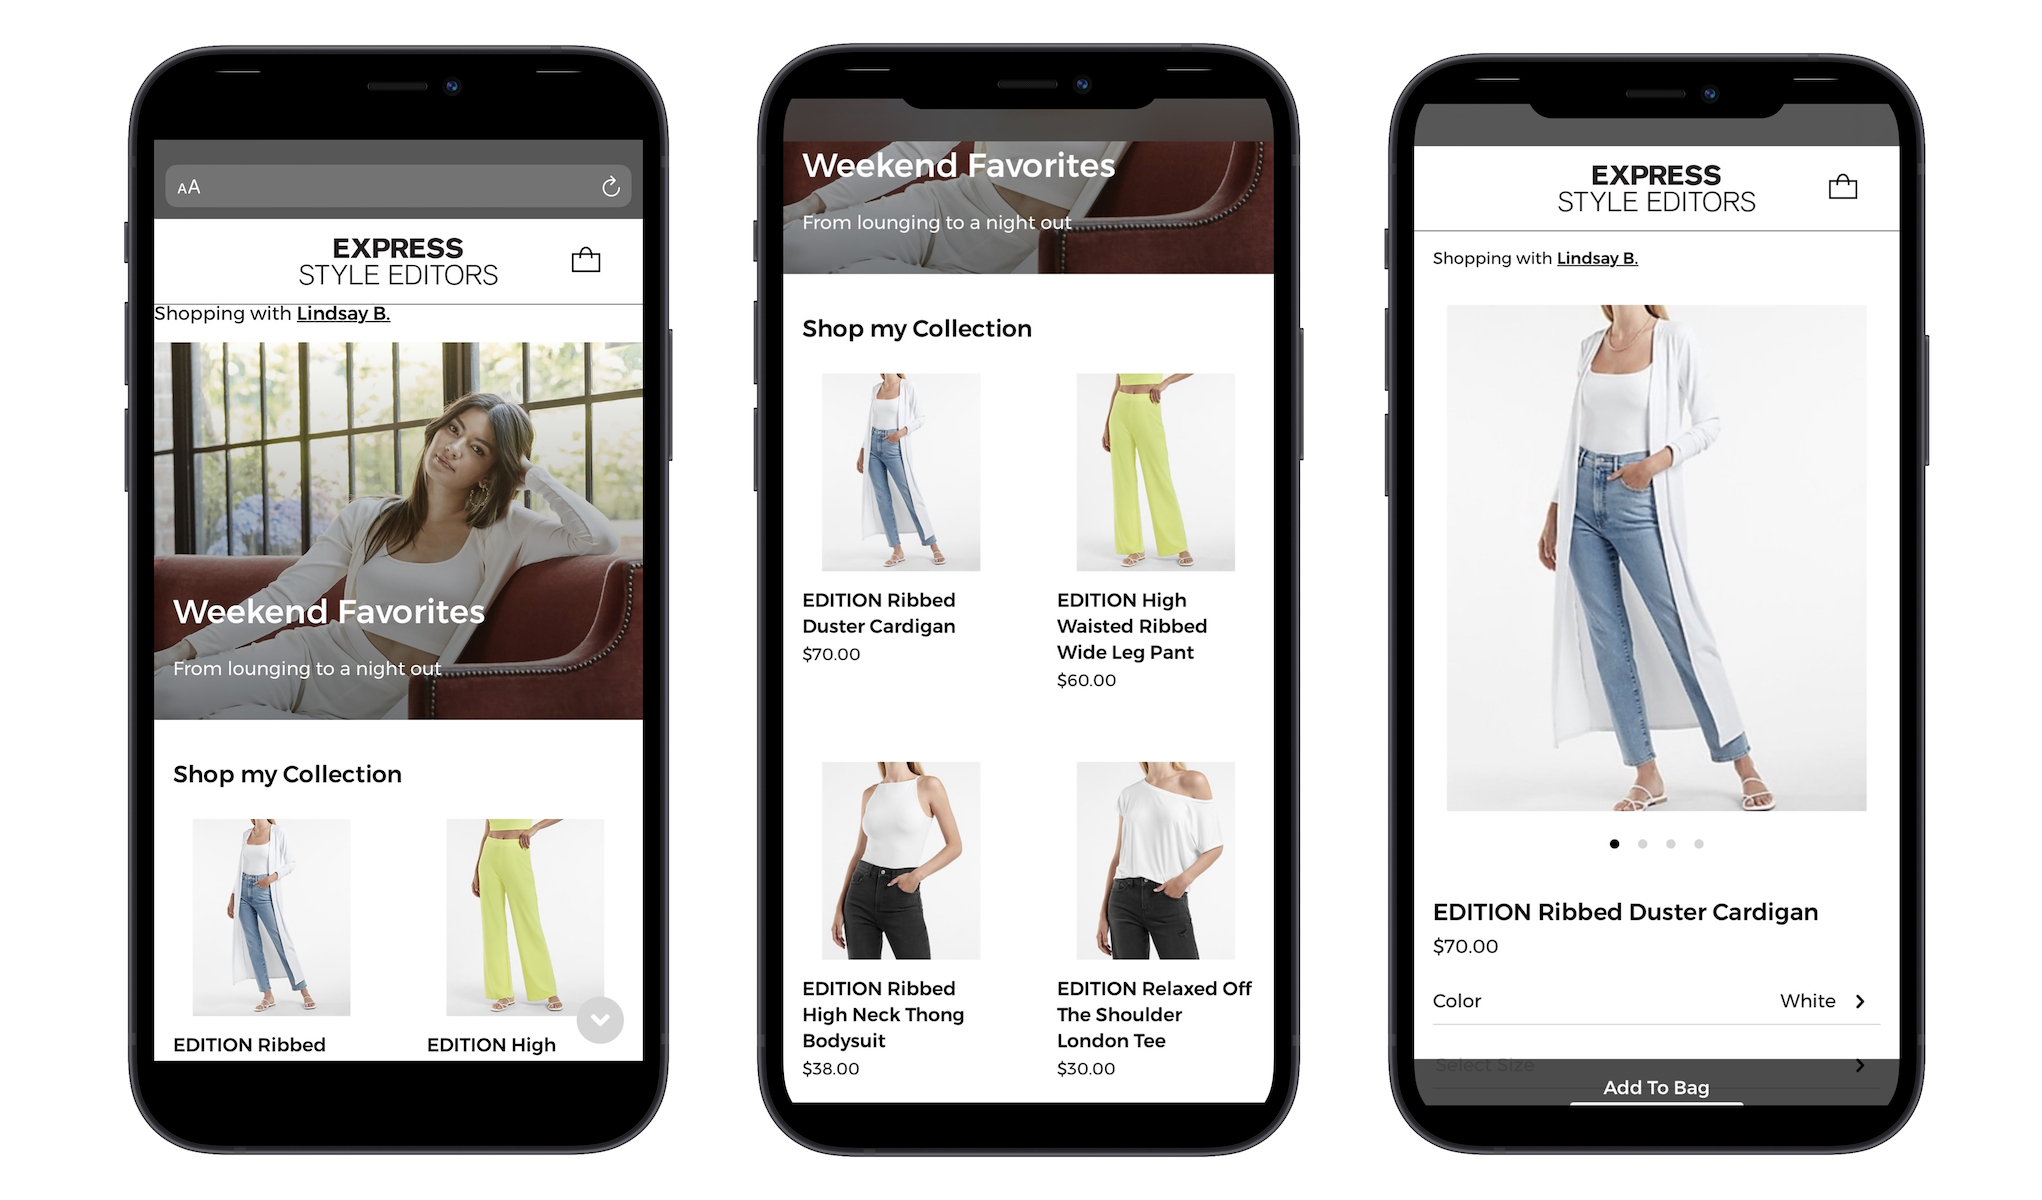 Express has launched Express Community Commerce, a social commerce experience aimed at fashion enthusiasts who want to offer style advice and inspiration, while selling Express products directly to their network.